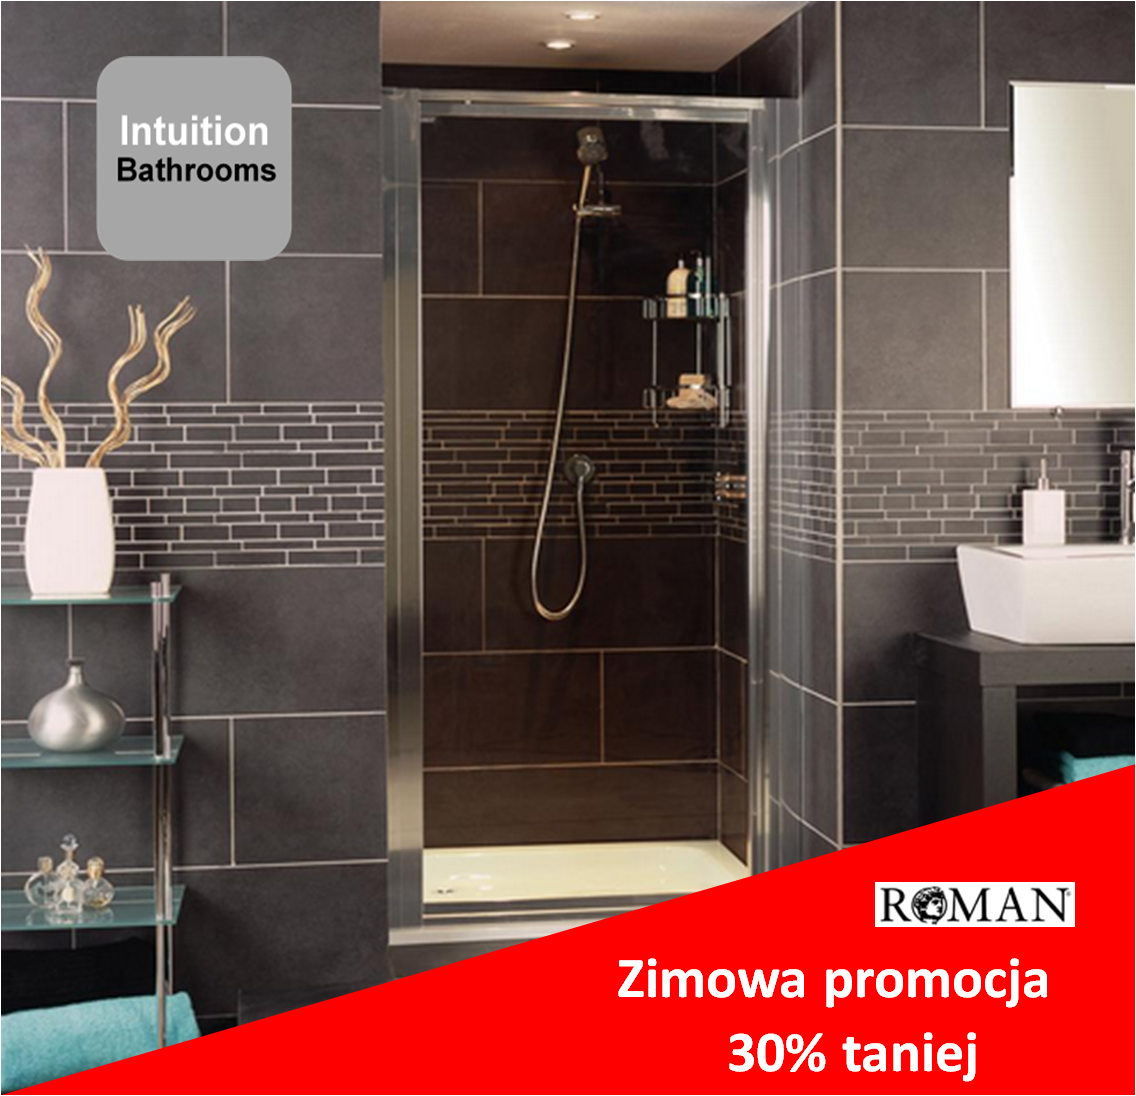 Intuition Bathrooms - luksusowe łazienki: Welcome to the world of ...